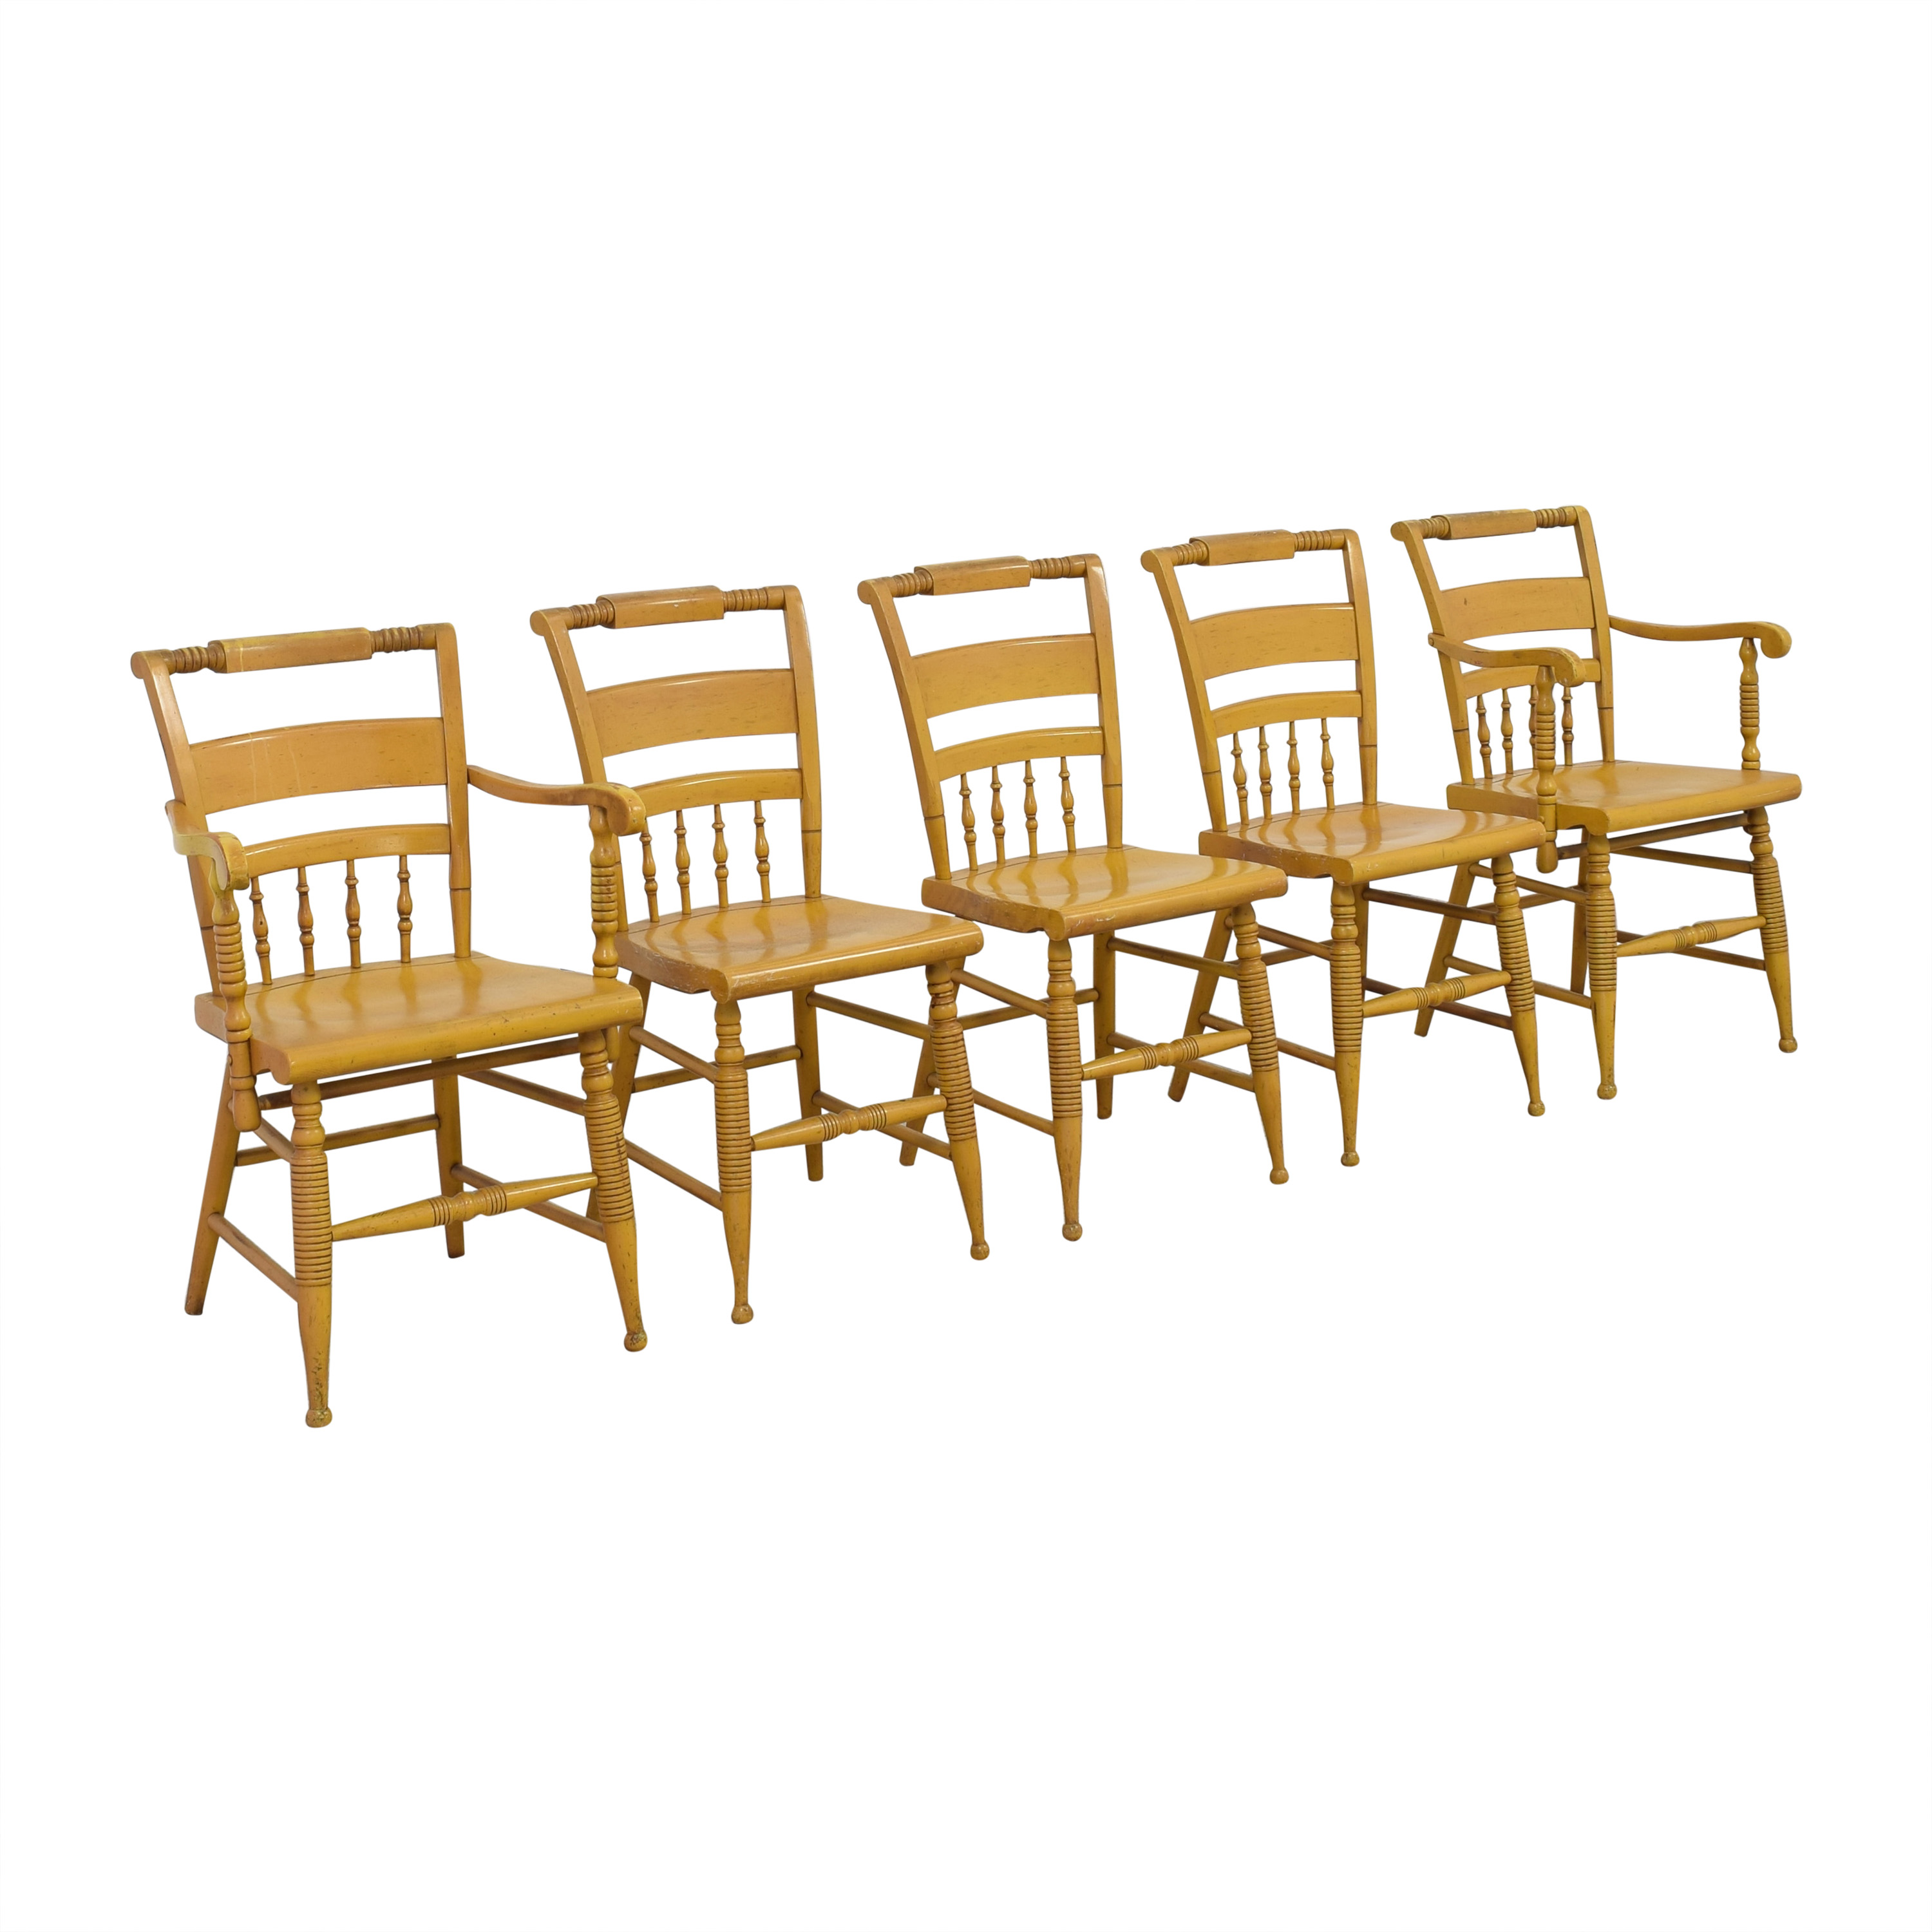 Nichols & Stone Vintage Dinner Chairs / Dining Chairs